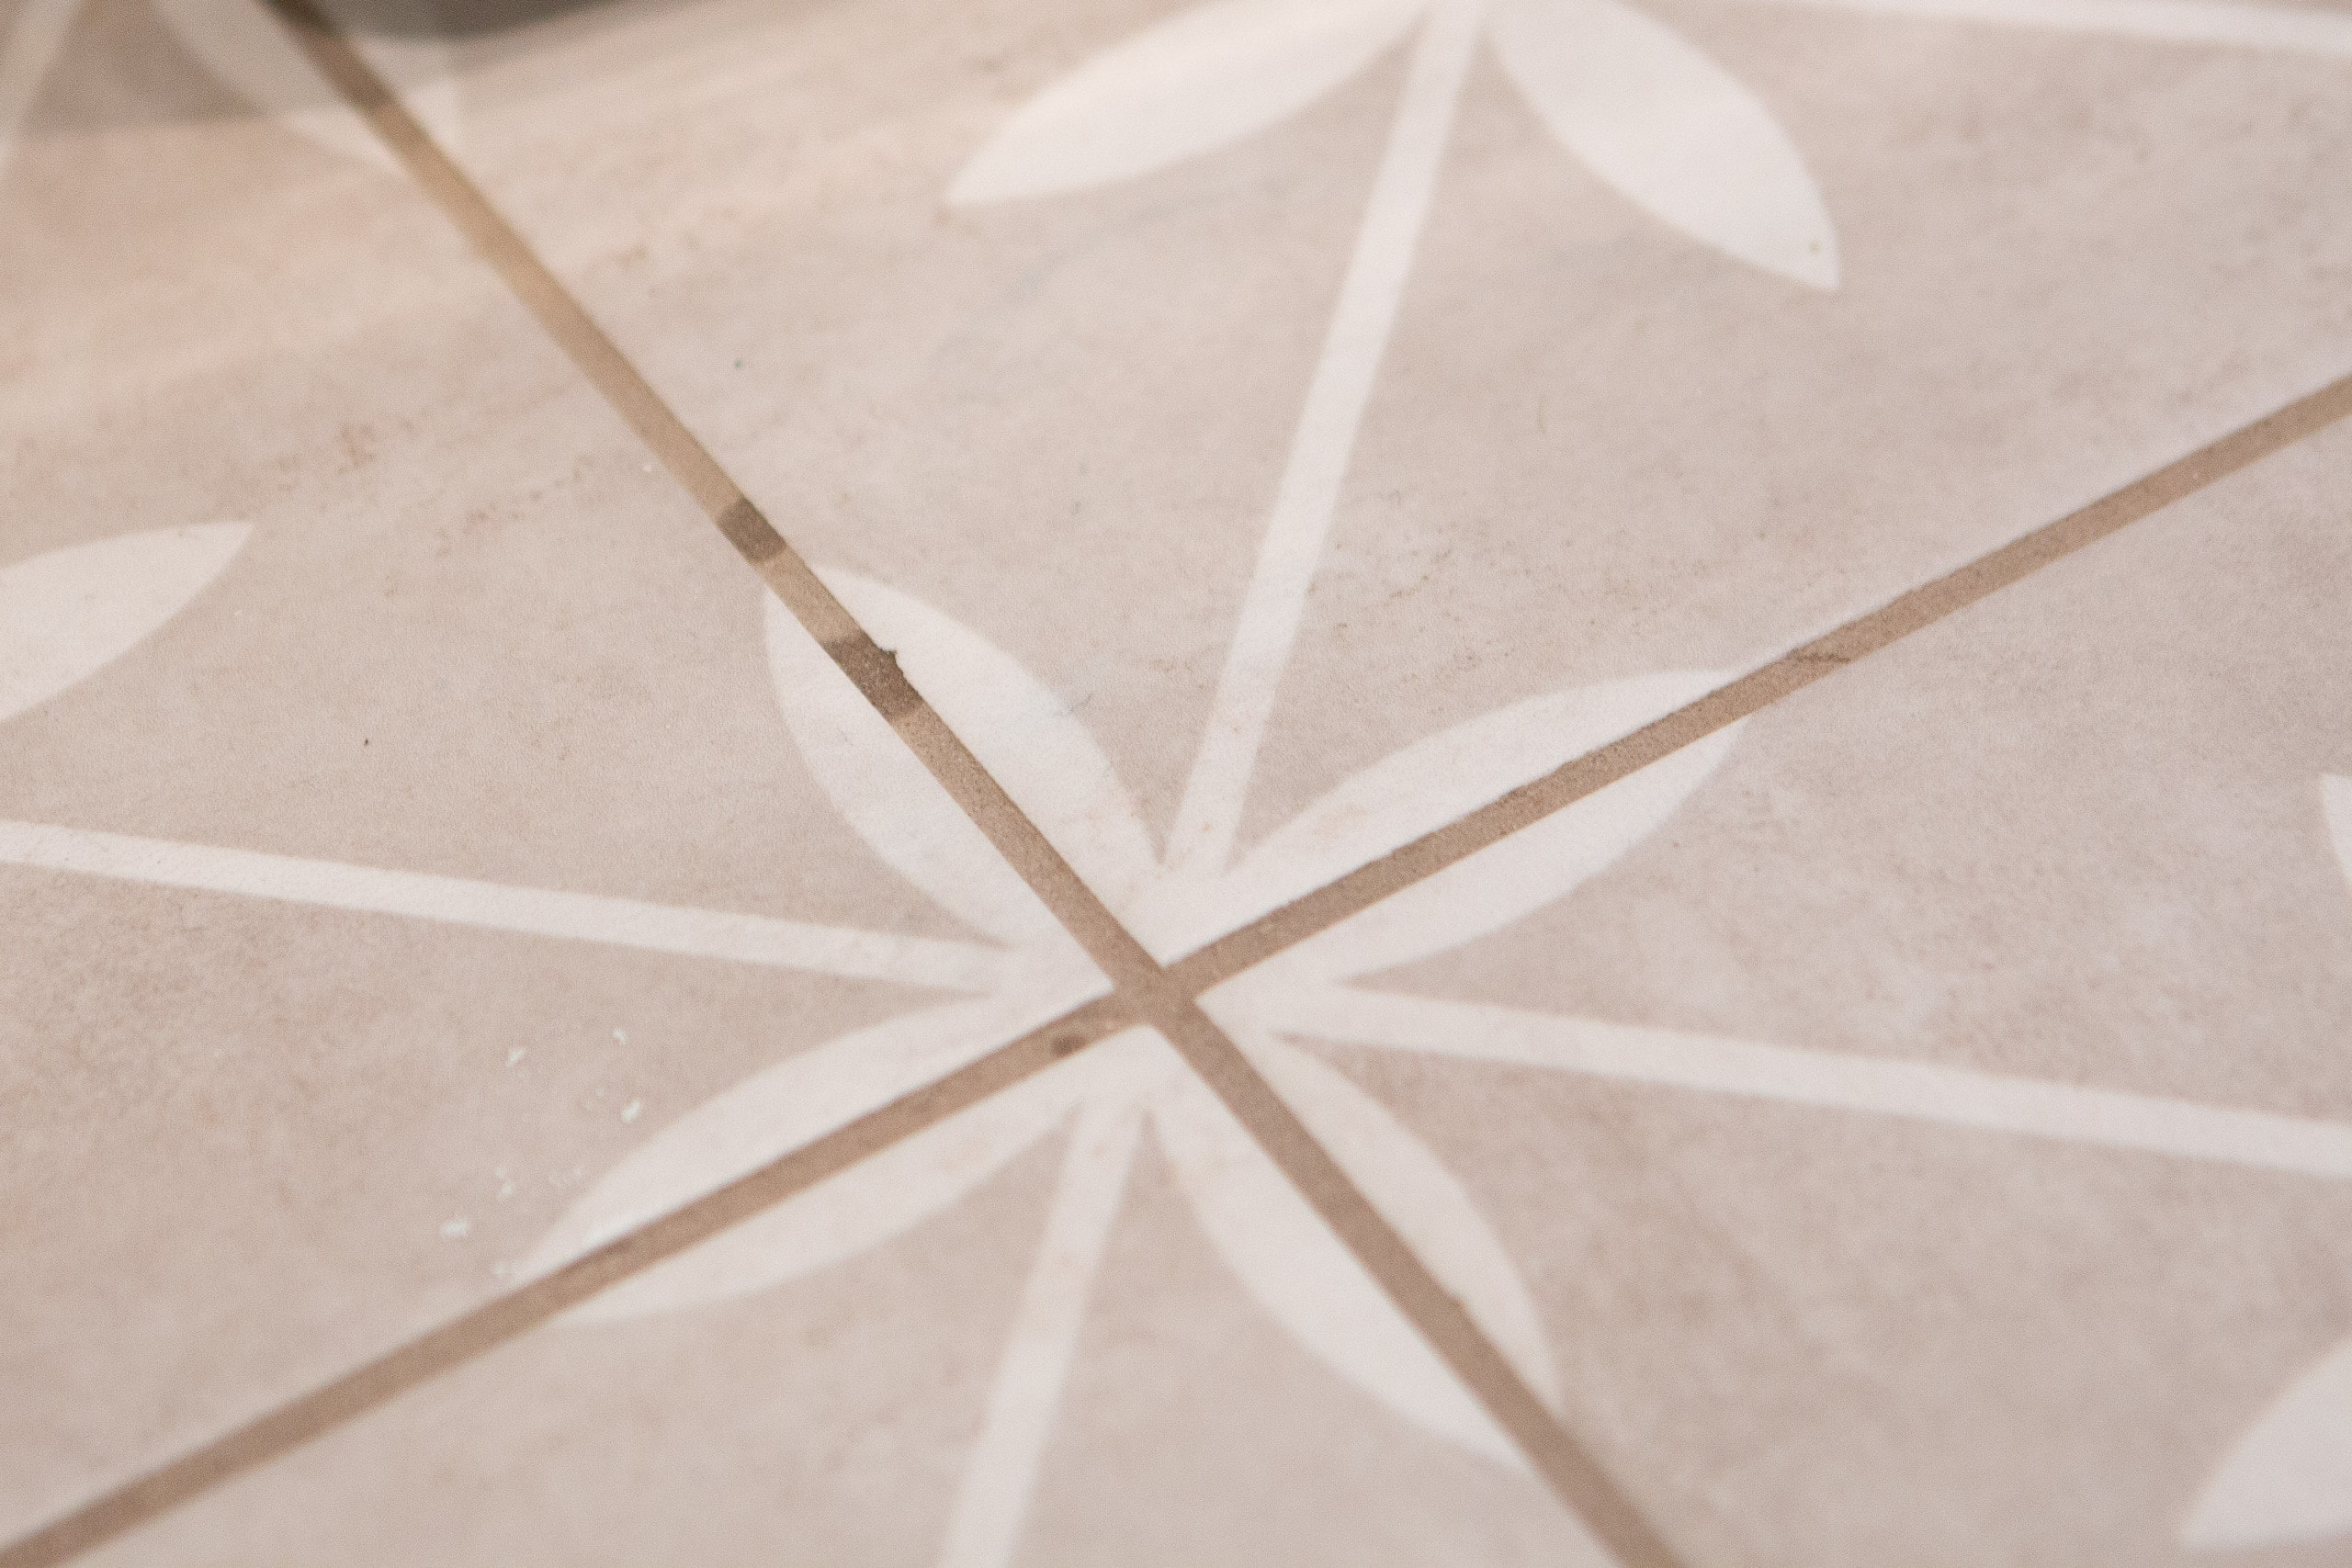 Stained laundry room grout